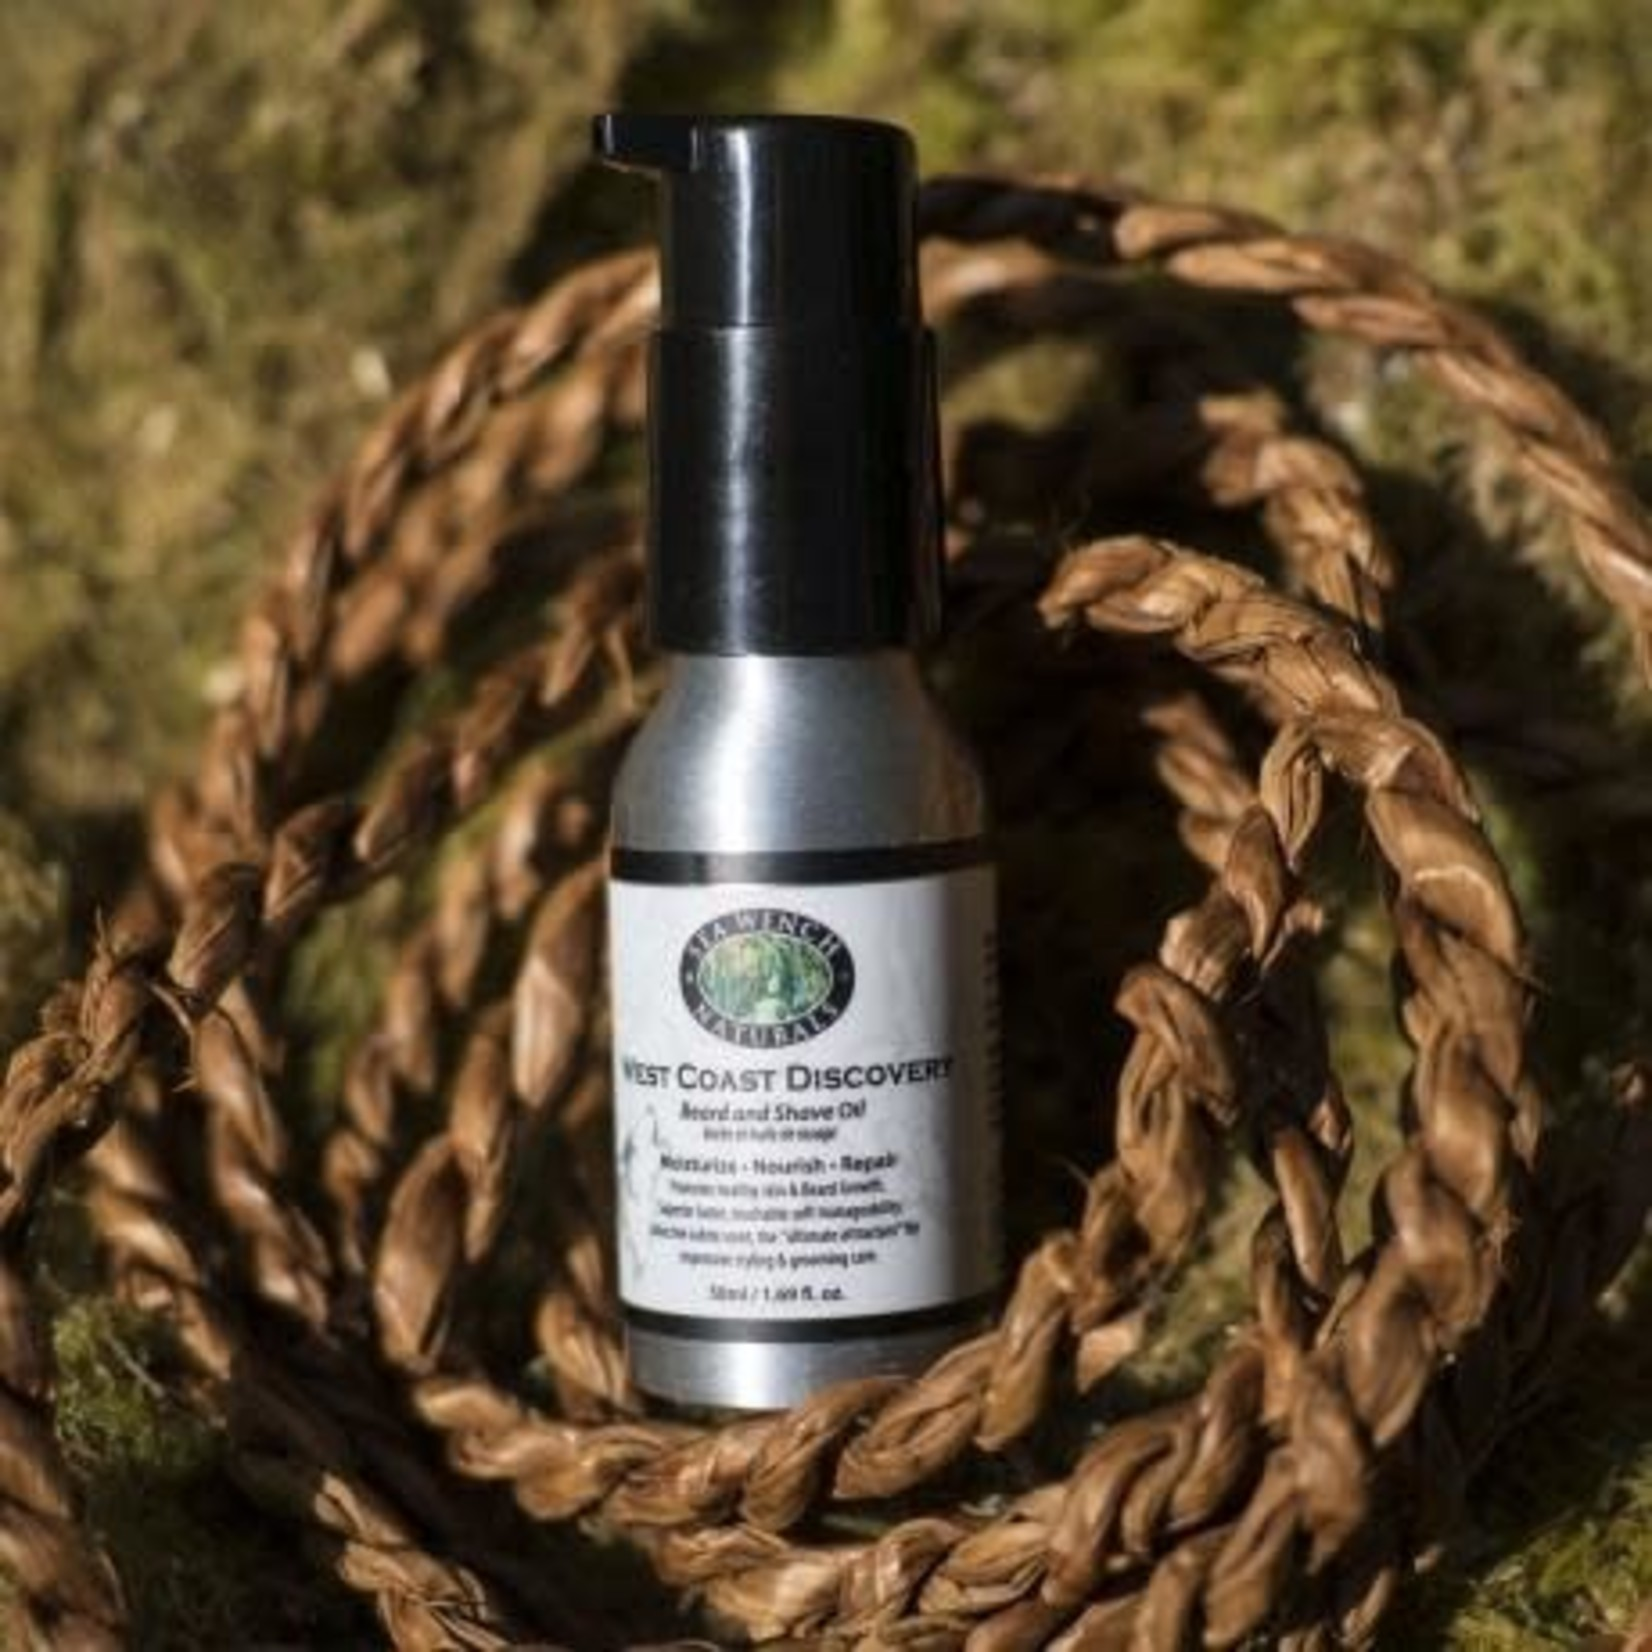 Sea Wench Beard and Shave Oil